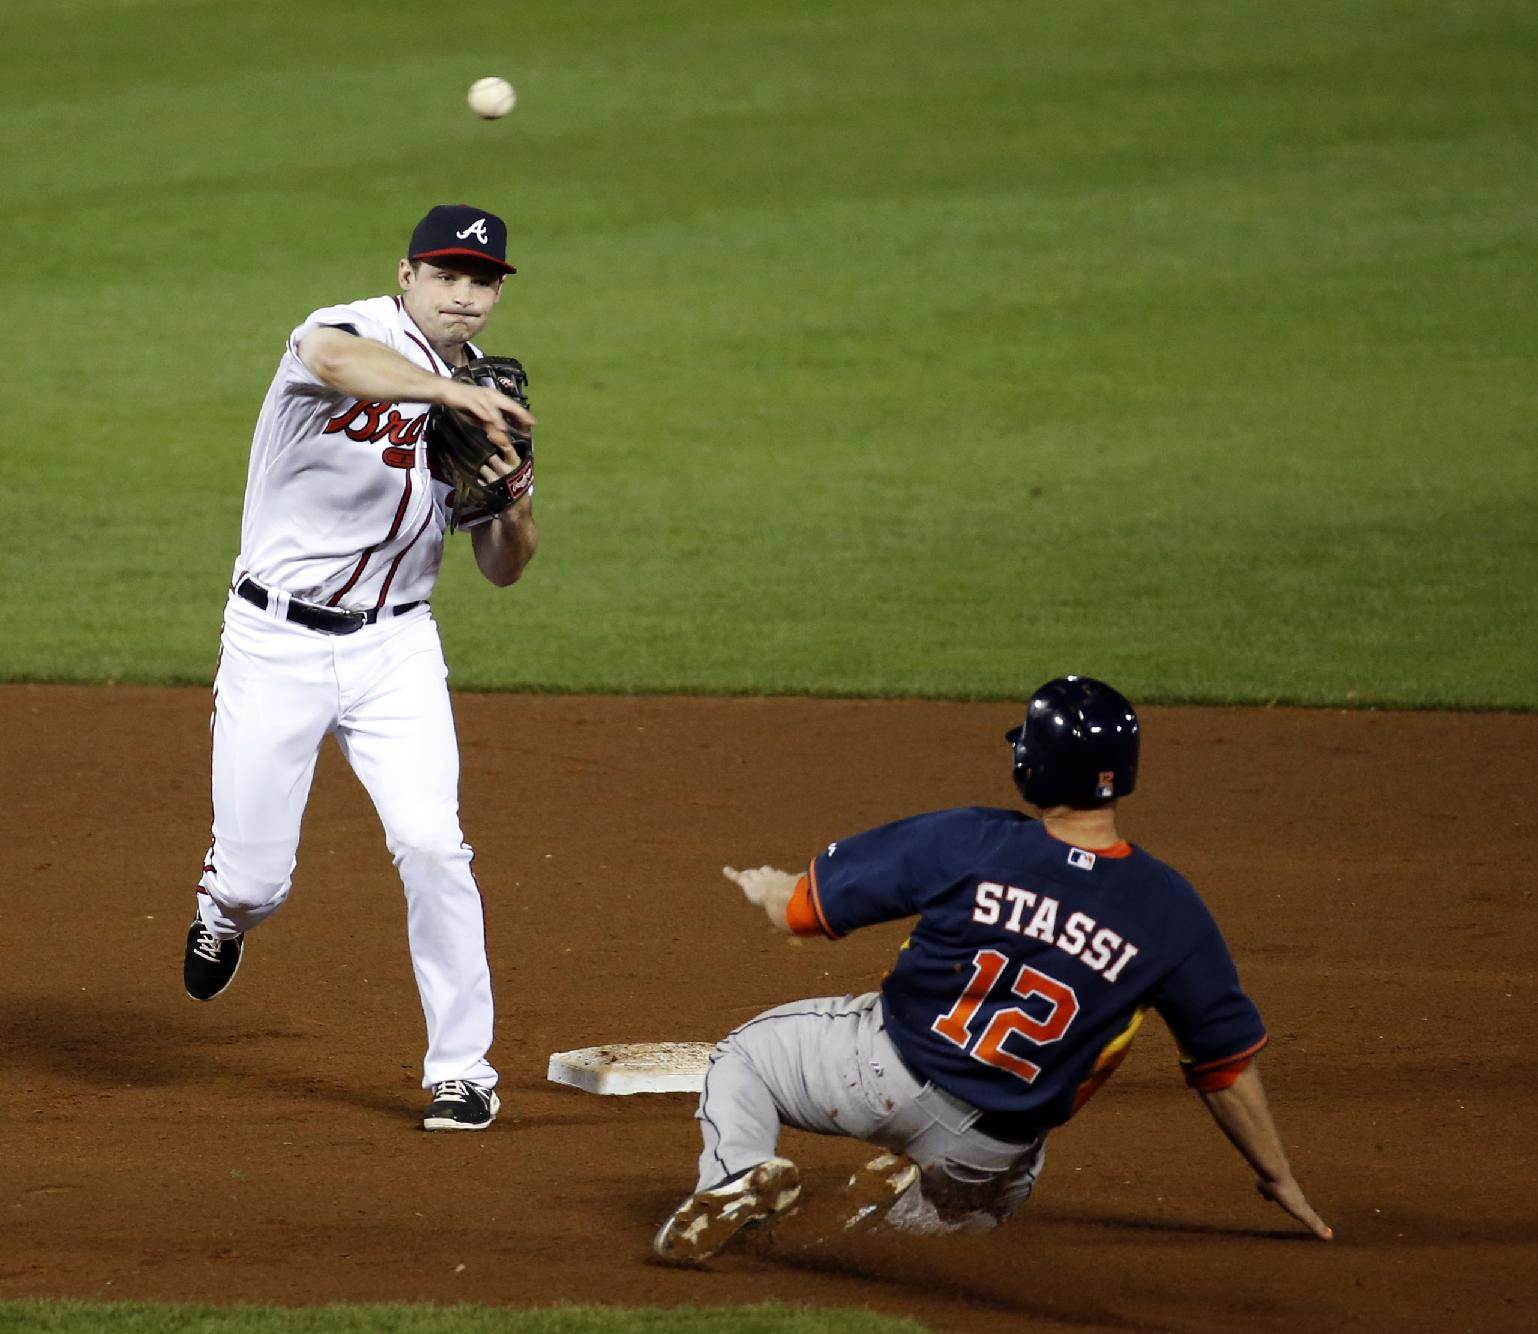 Houston Astros catcher Max Stassi is out at second, as Atlanta Braves second baseman Phil Gosselin makes the throw to first to complete a double play in the eighth inning of an exhibition baseball game, Friday, Feb. 28, 2014, in Kissimmee, Fla. The Astros won 7-5